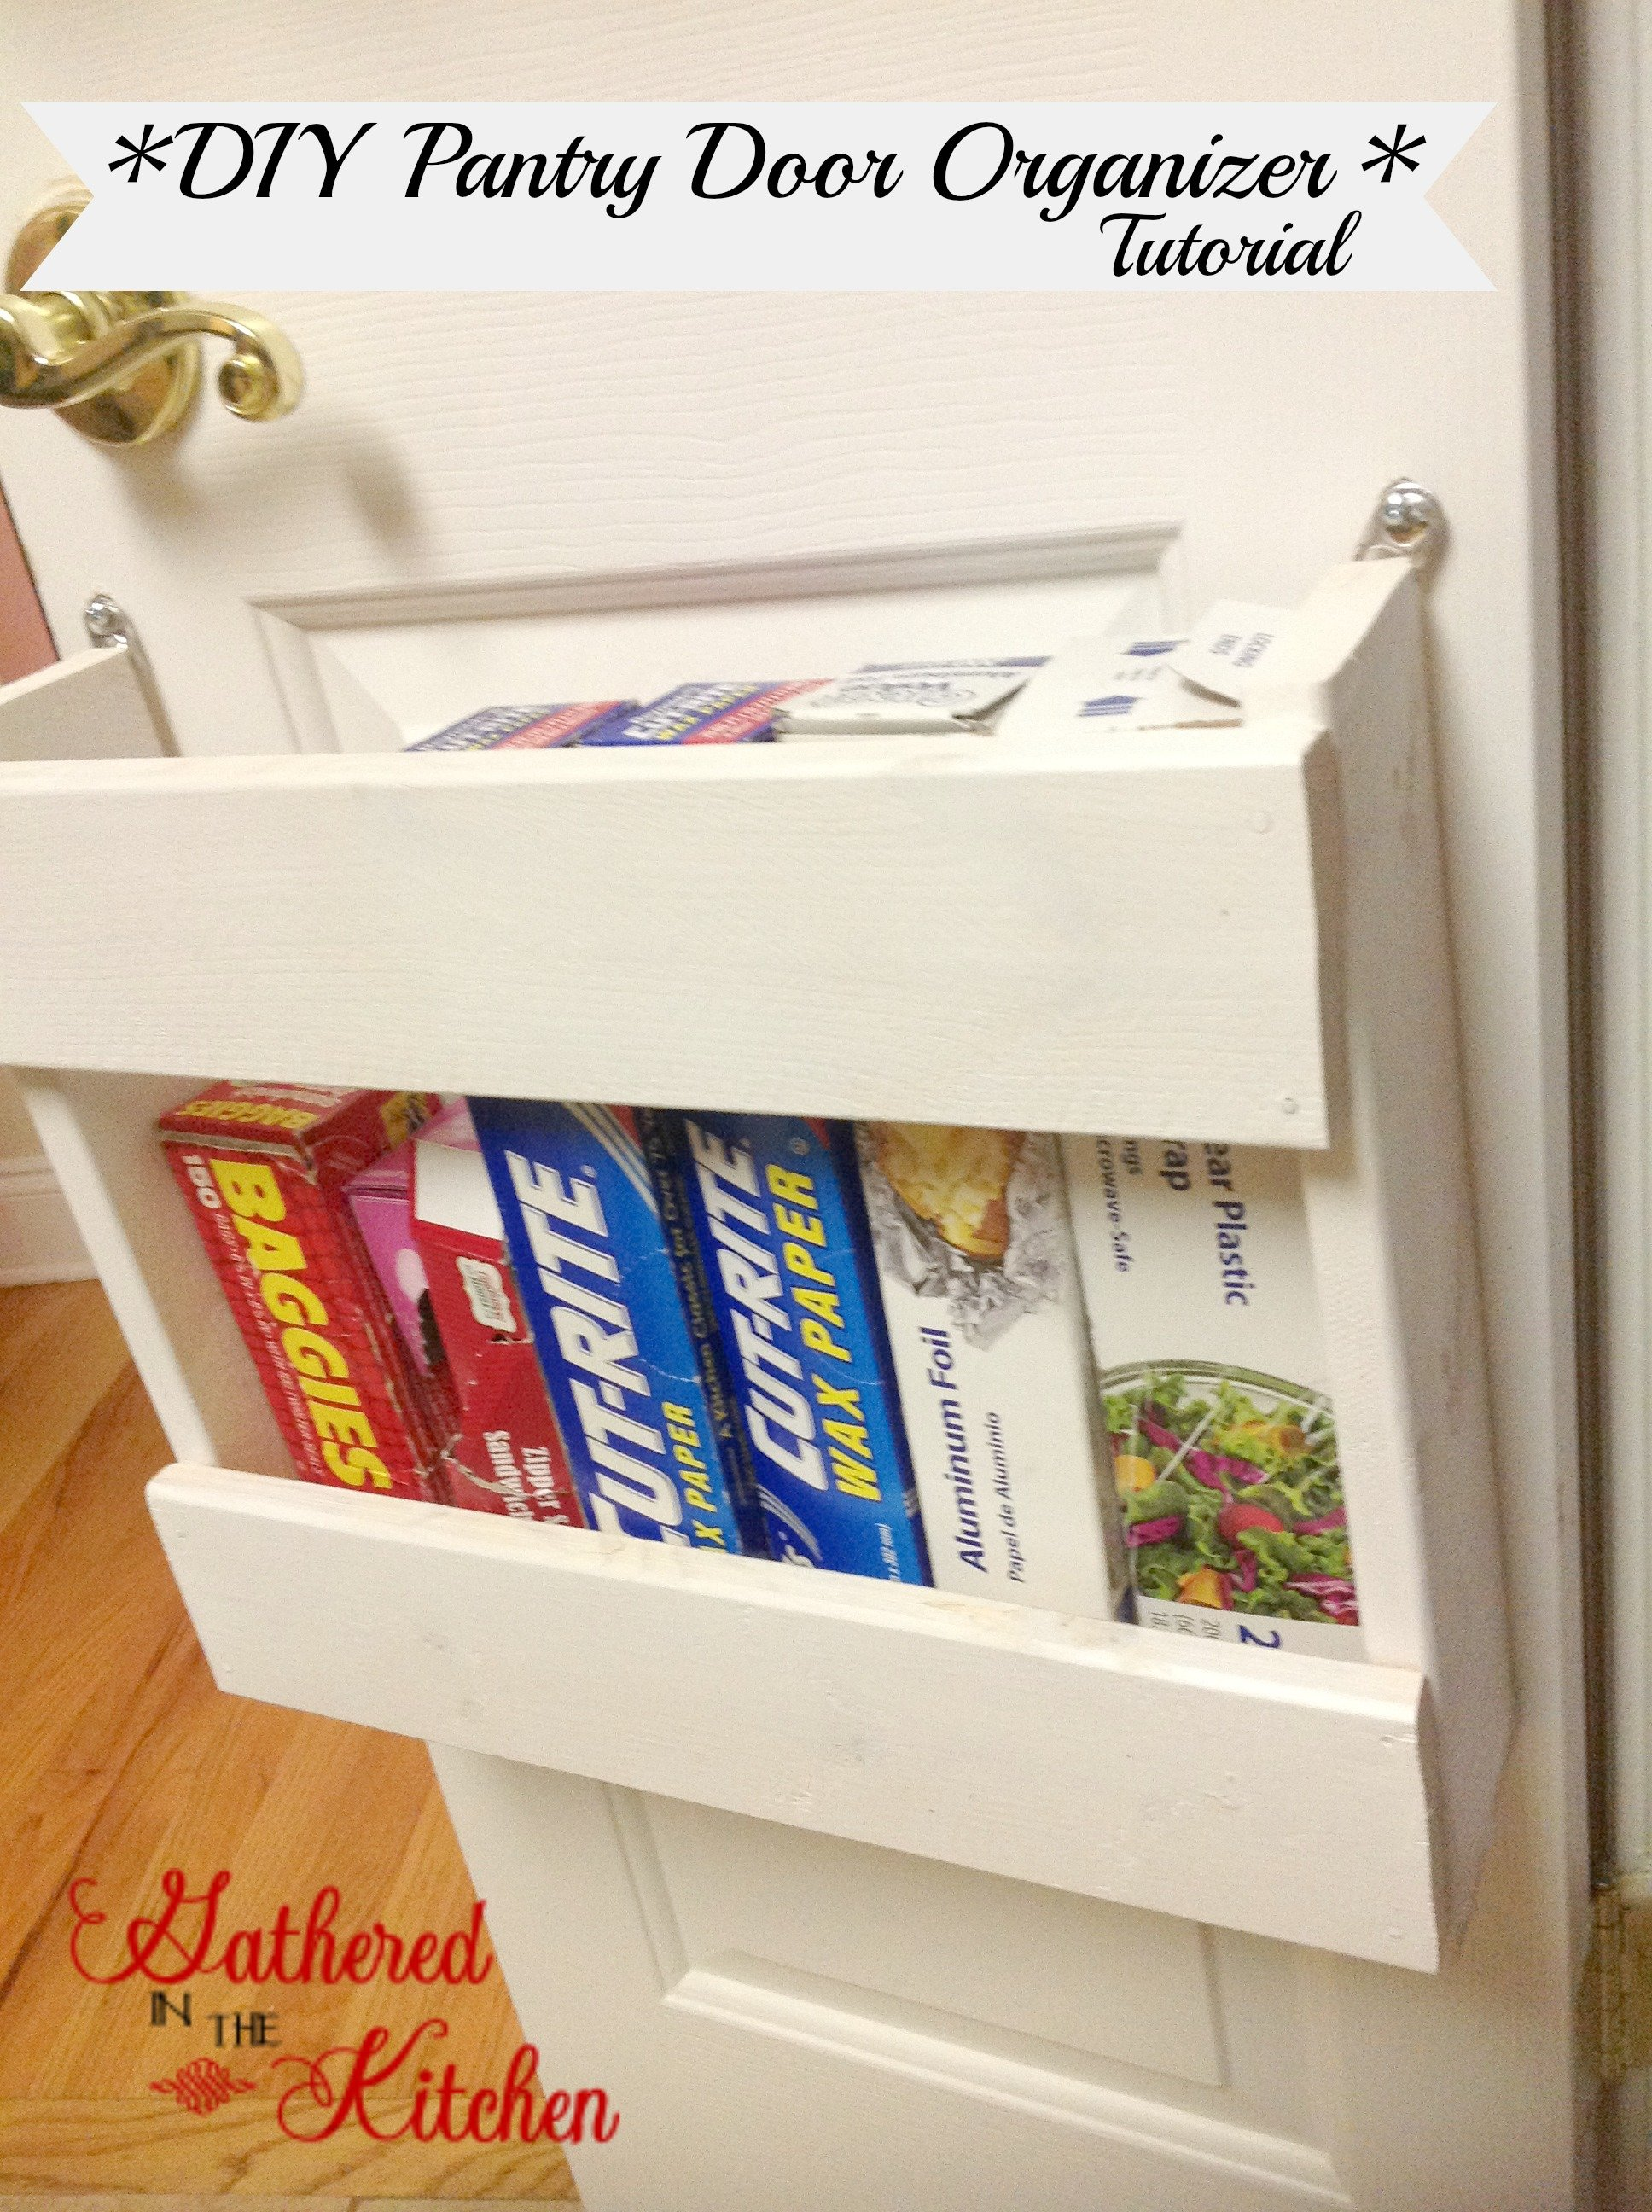 Pantry organizer diy foil more organizer for Diy pantry door organizer